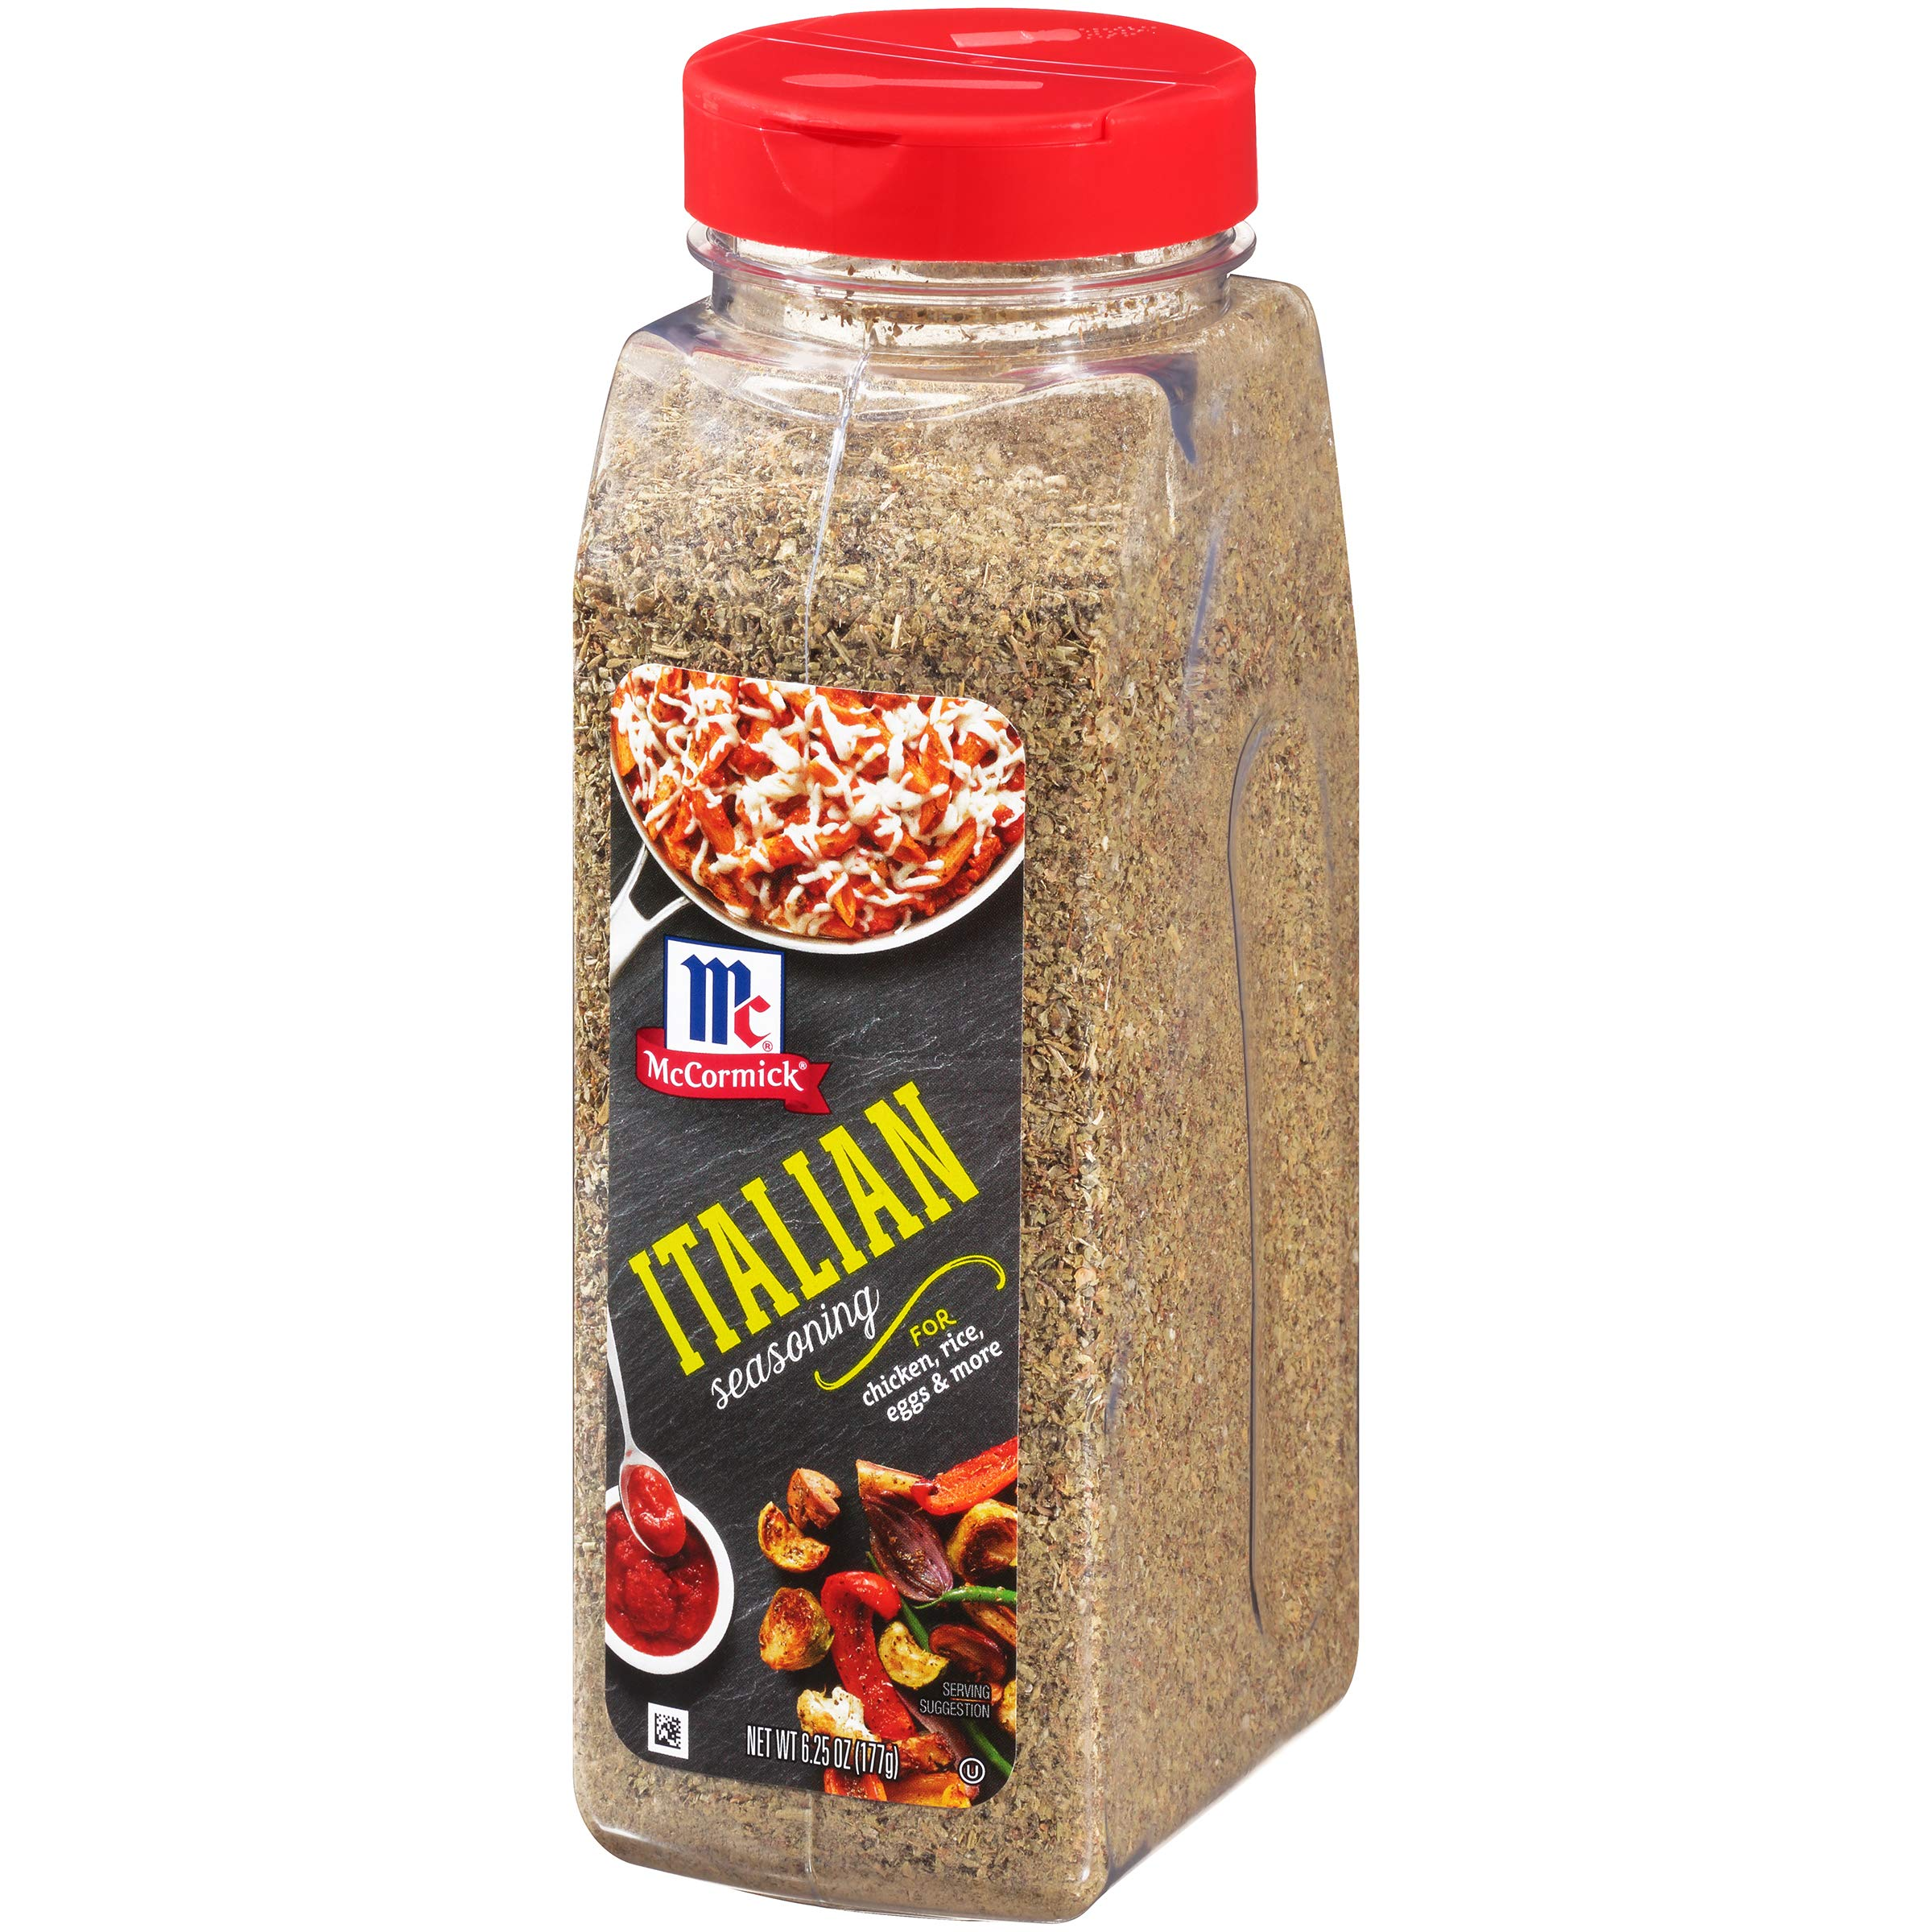 McCormick Perfect Pinch Italian Seasoning, 6.25 oz